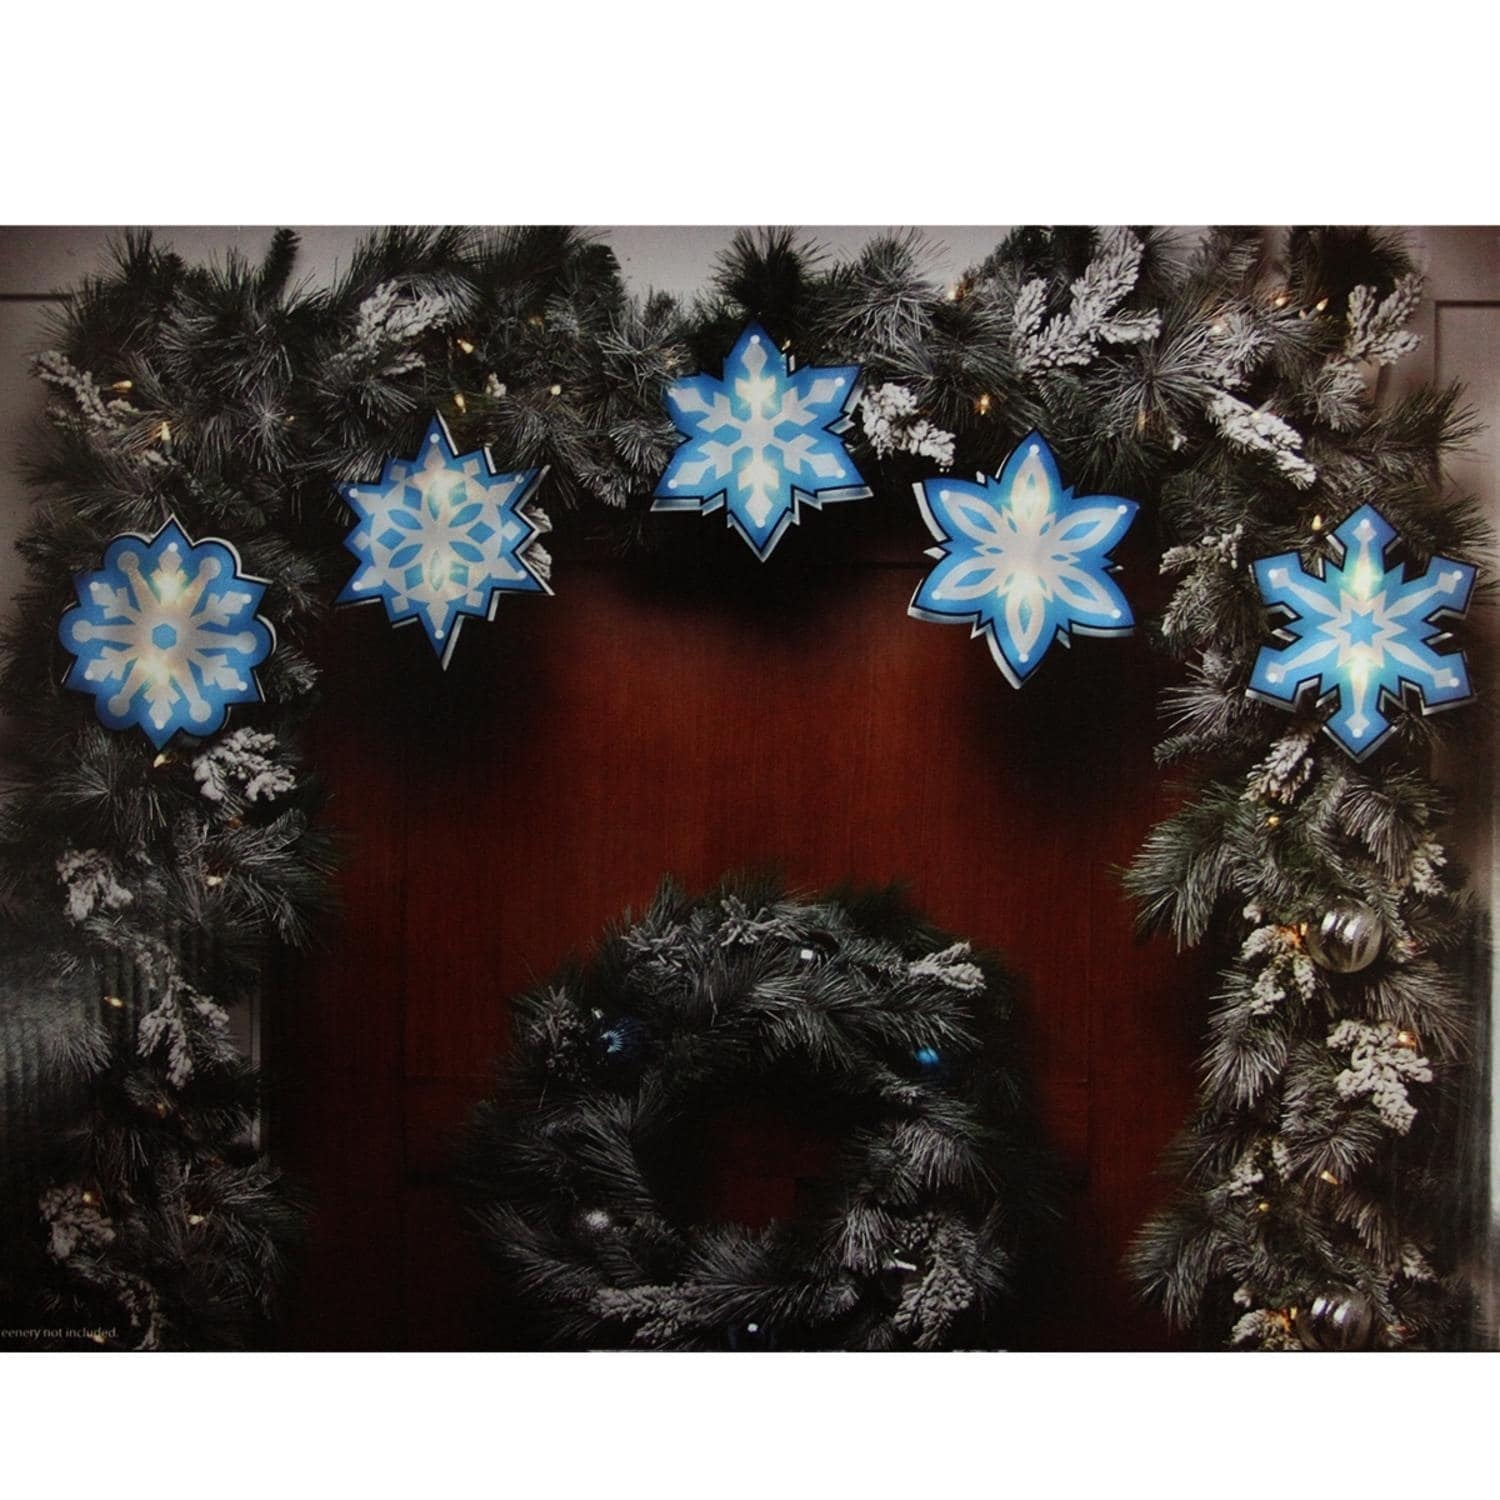 IMPACT 7' Blue and White Shimmering Snowflake Christmas L...